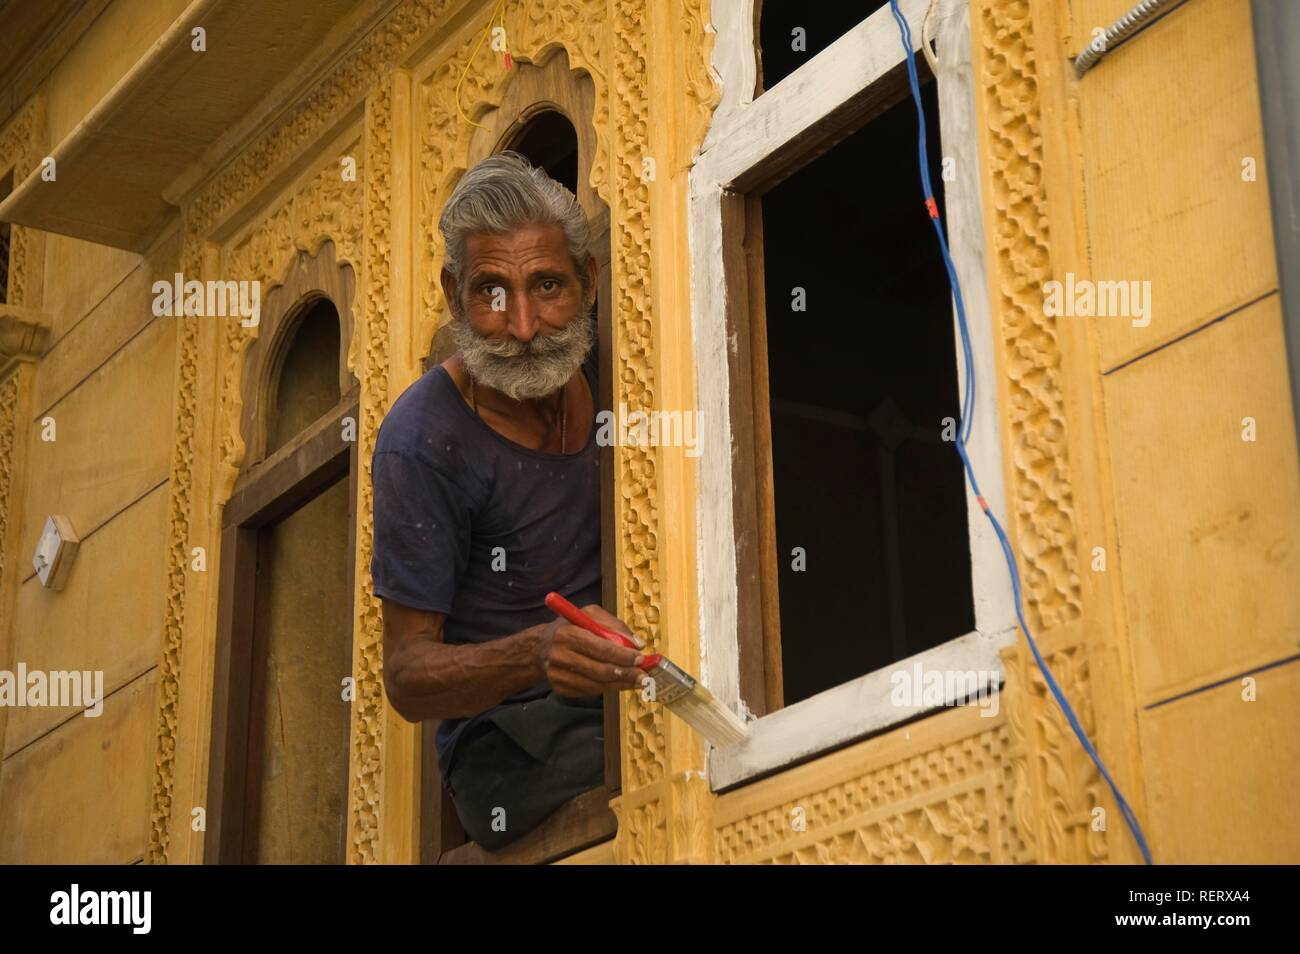 Indian painting a yellow house, Jaisalmer, Thar Desert, Rajasthan, India, South Asia - Stock Image